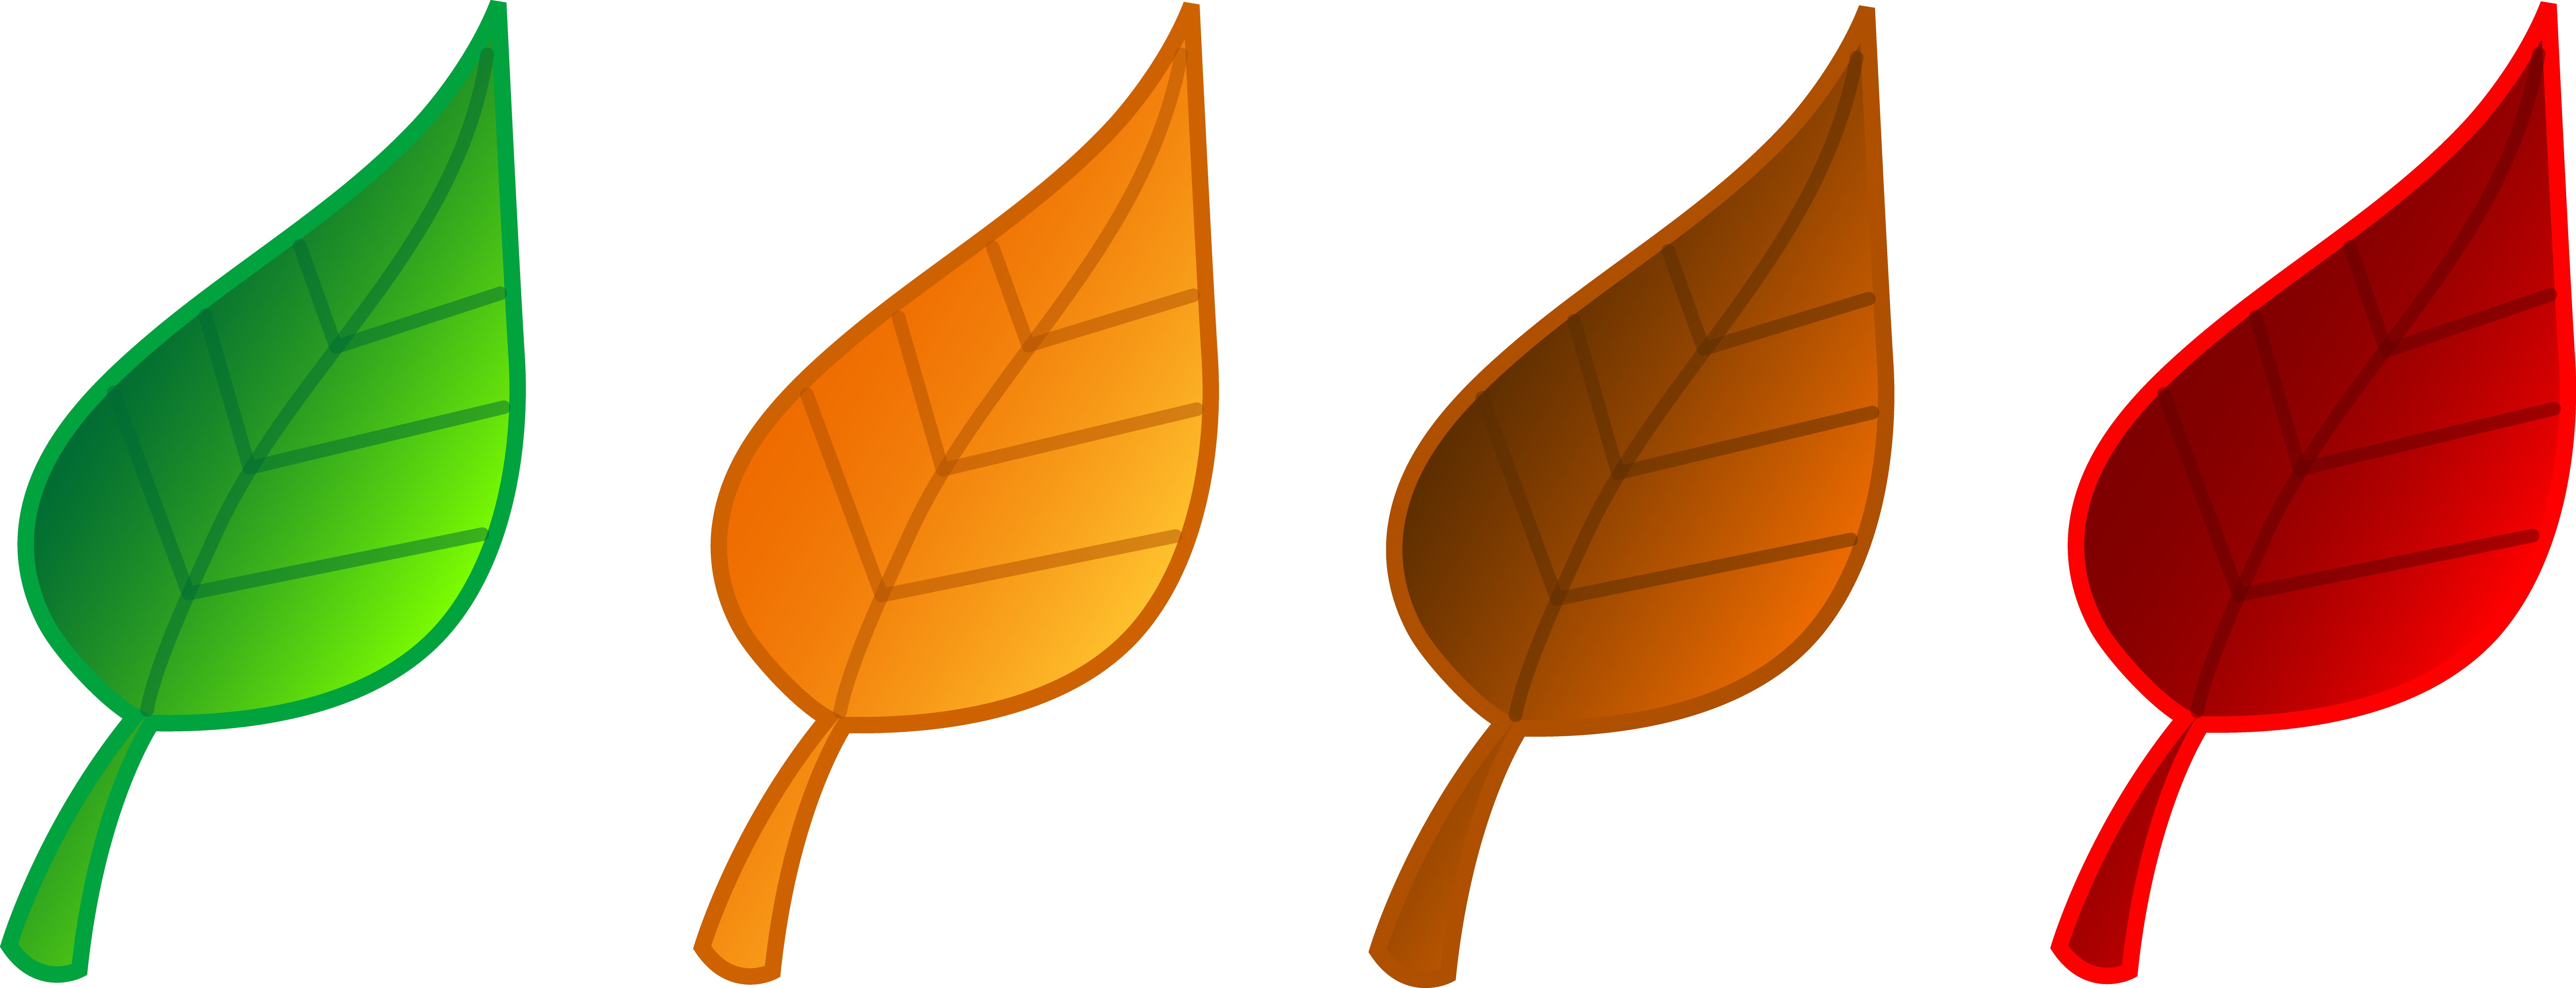 7840x3006 Autumn Leaves Clip Art